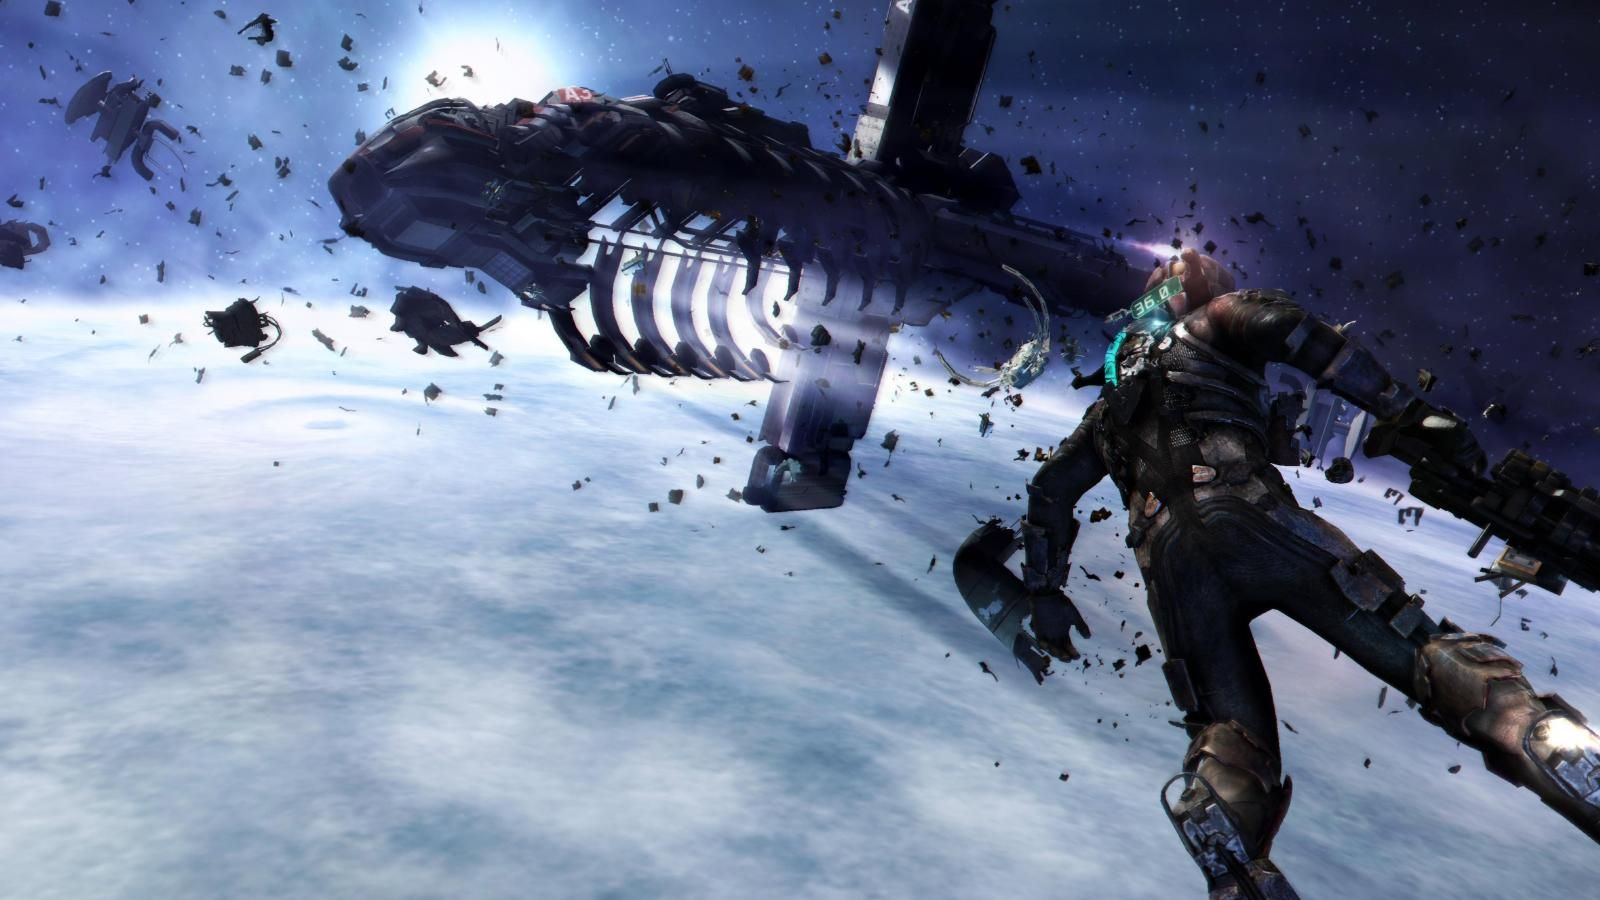 Wallpaper for 1600x900 — Dead space ishimura Dead space